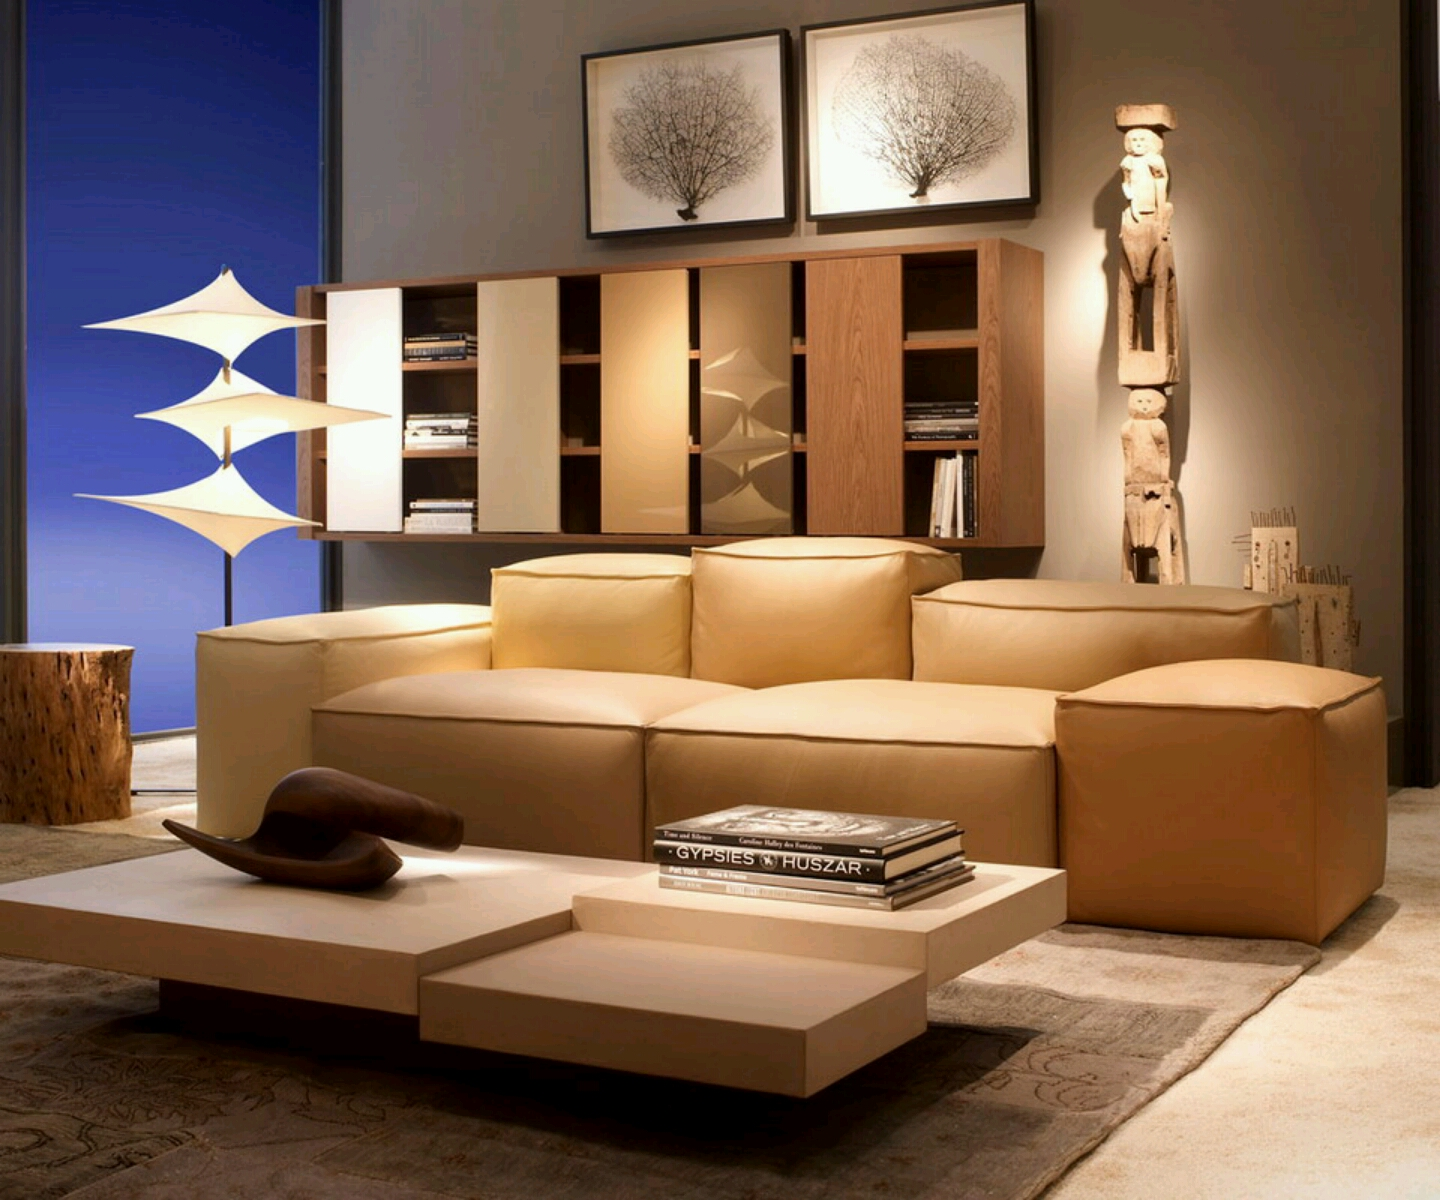 Beautiful modern sofa furniture designs an interior design for Modern interior design furniture